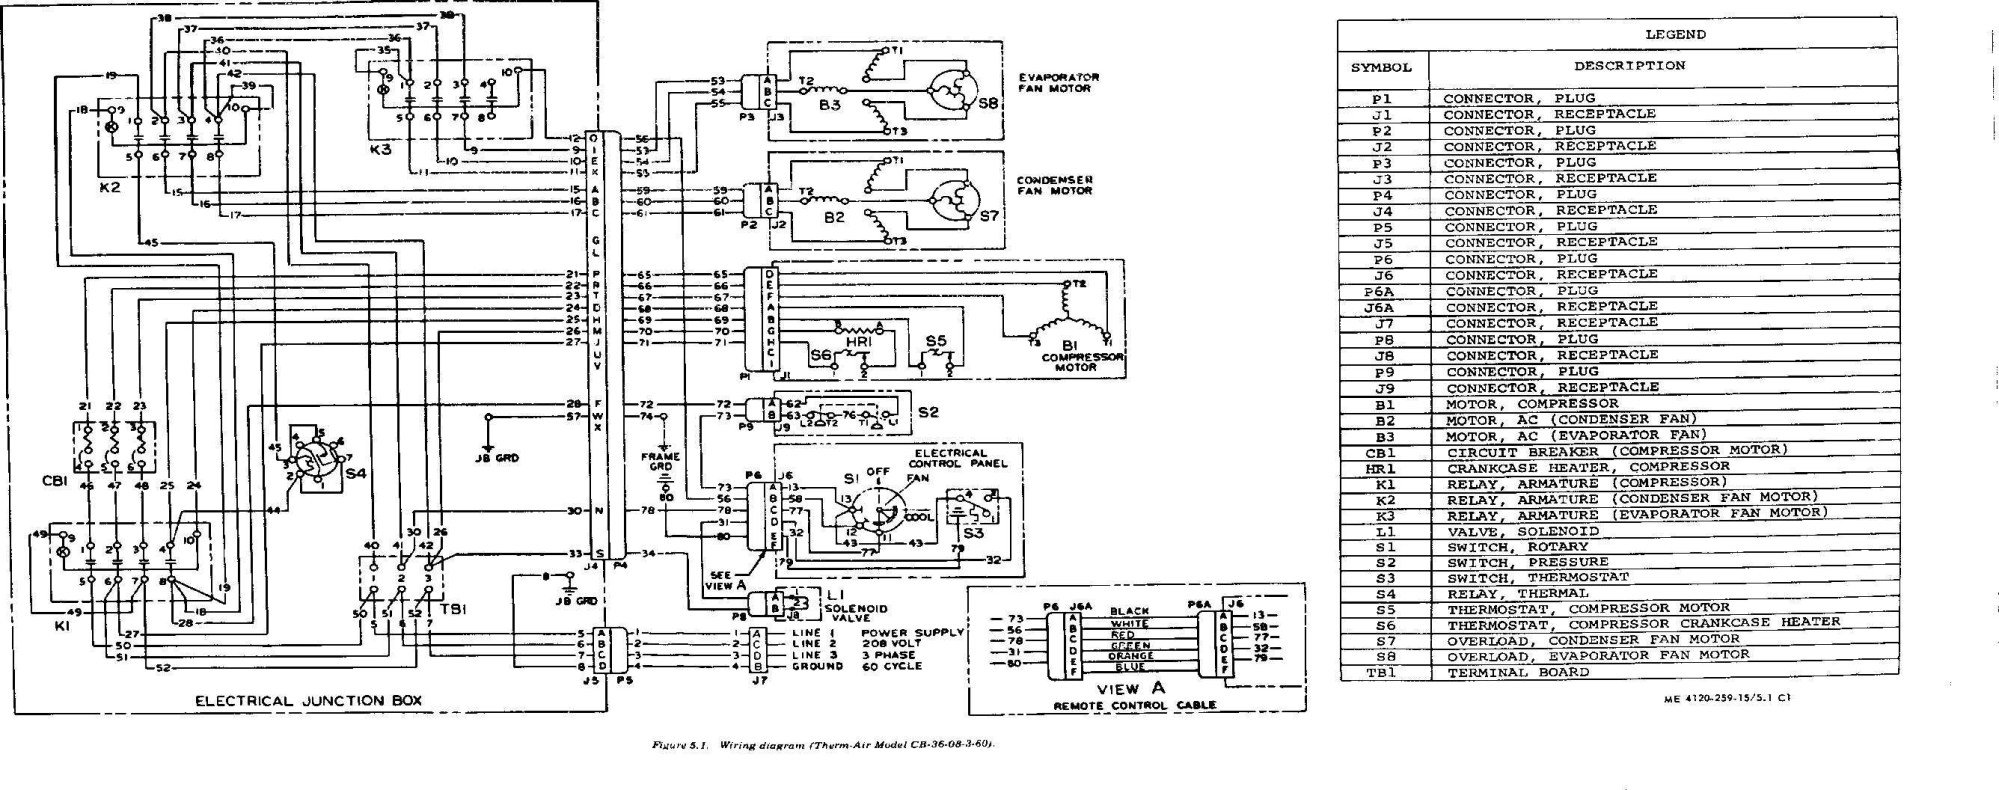 hight resolution of trane wiring schematics wiring diagram datasource trane wiring diagram heat pump trane air conditioner wiring schematic